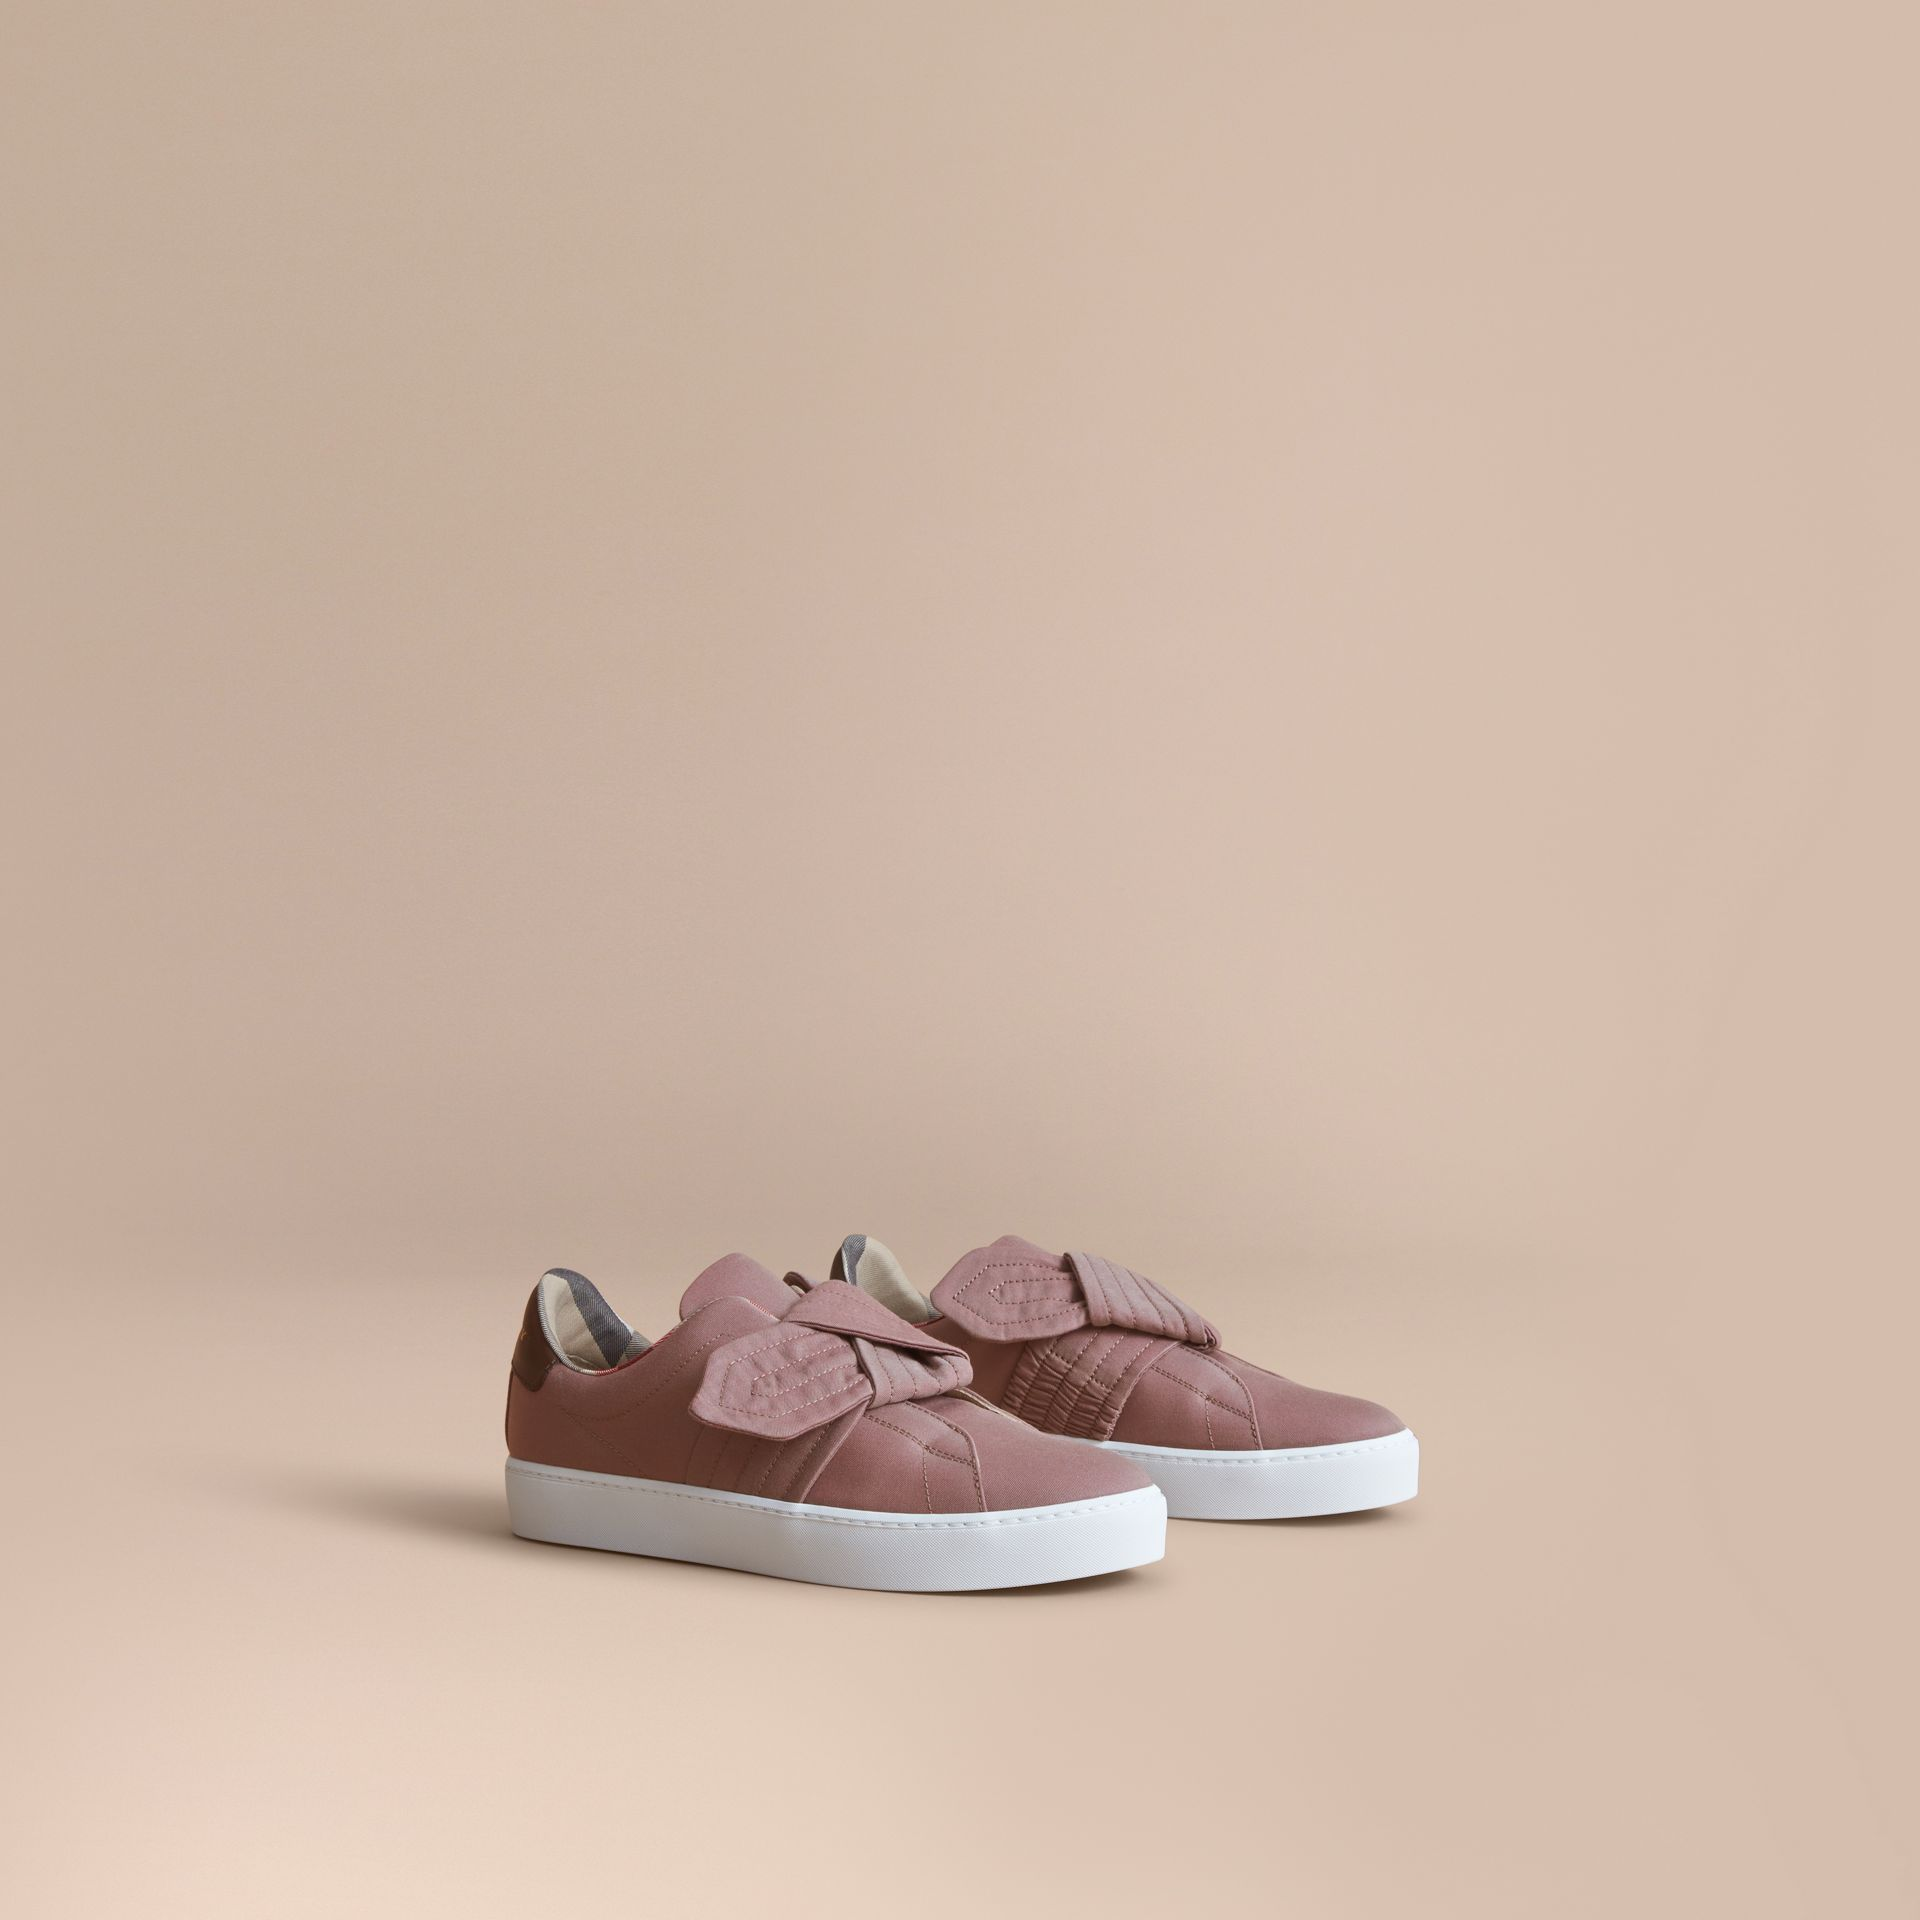 Sneakers avec nœud trench (Rose Antique) - Femme | Burberry - photo de la galerie 1